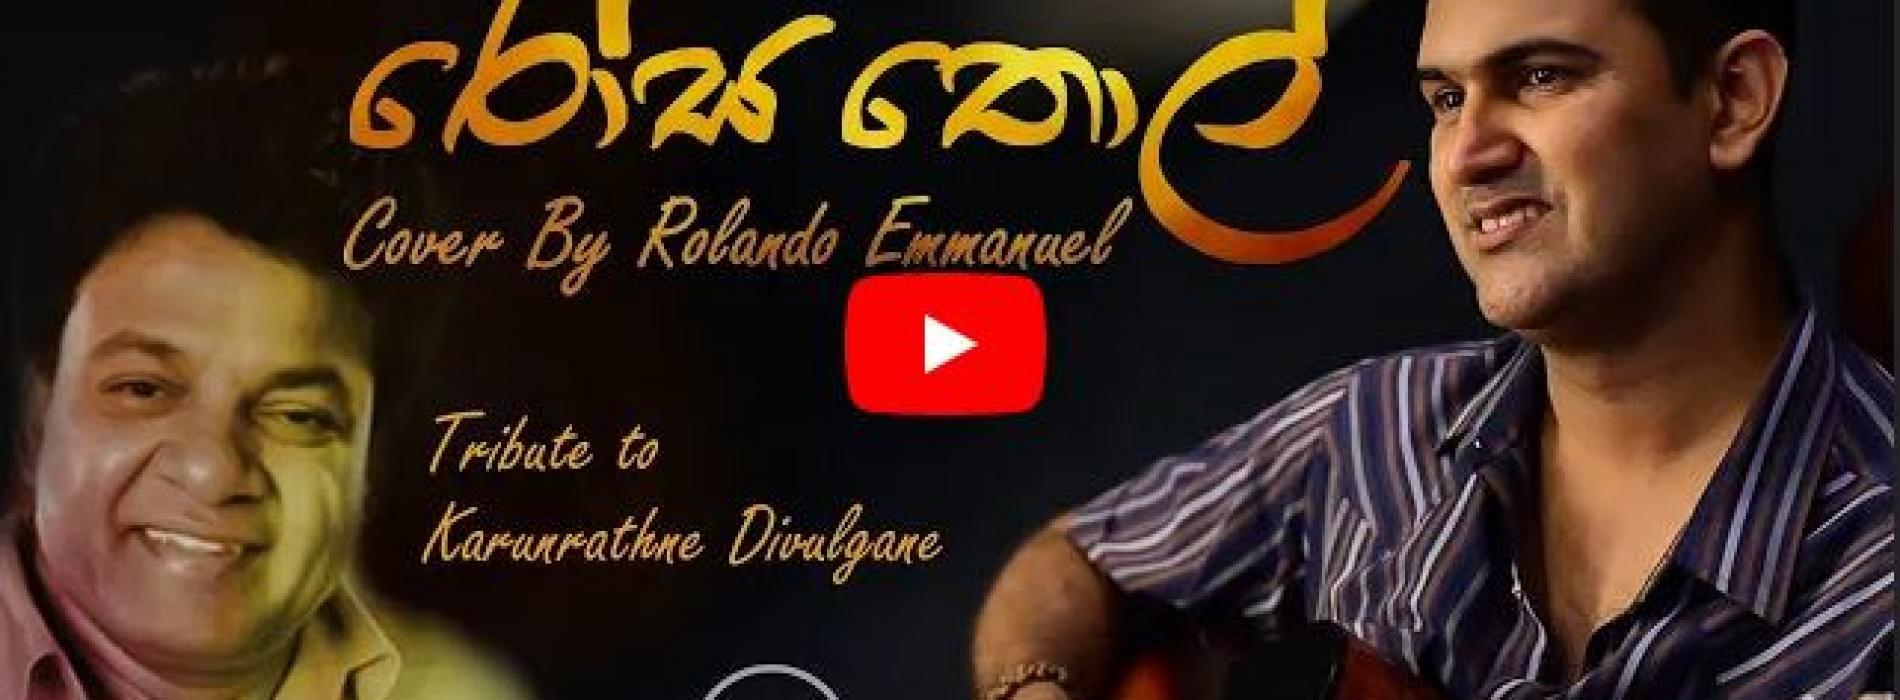 New Music : Rosa Thol Sibimi ( රෝස තොල් සිඹිමි ) – Cover By Rolando Emmanuel